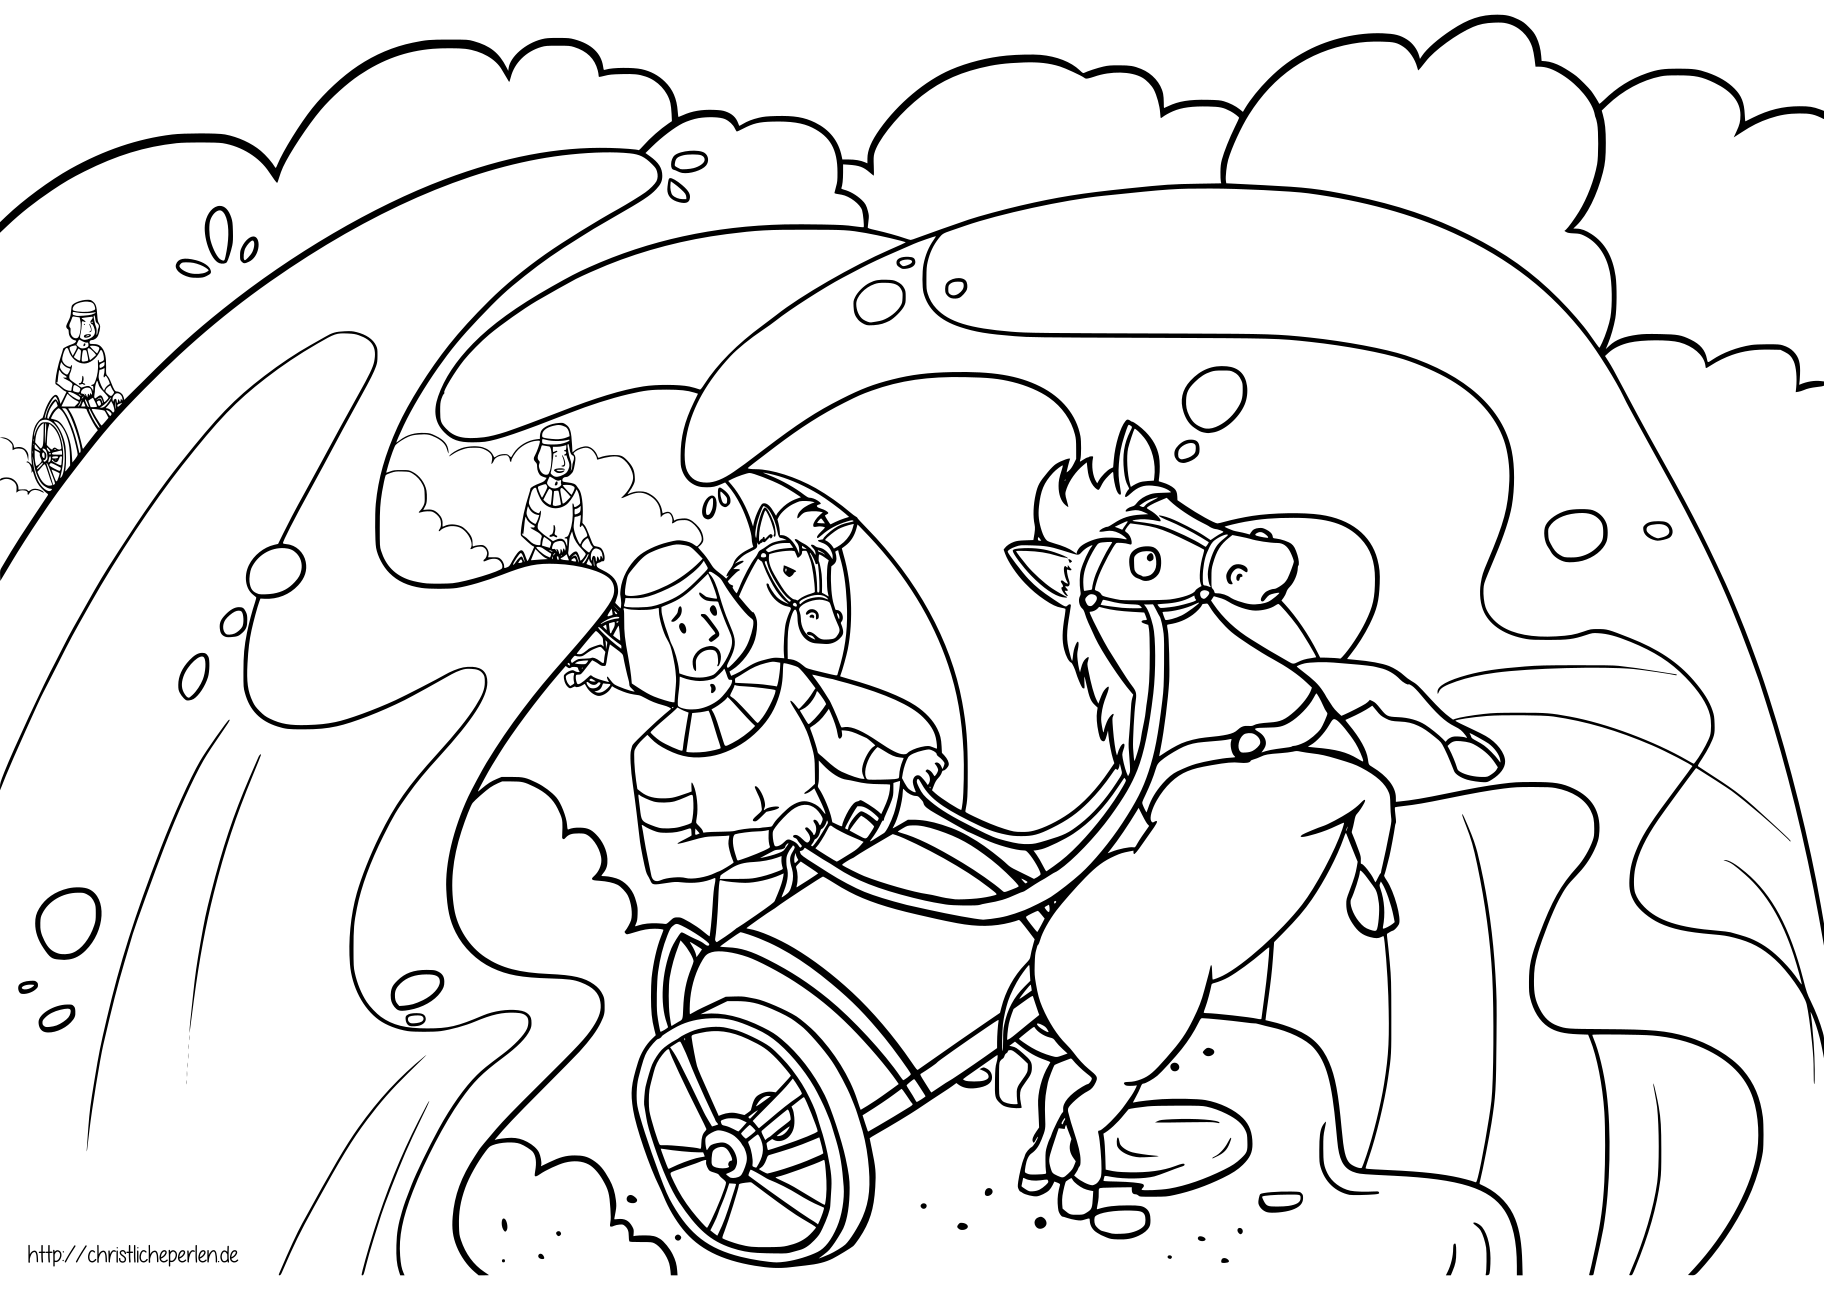 moses red sea crossing coloring pages | Mose teilt das Meer Ausmalbilder / Crossing the Sea ...